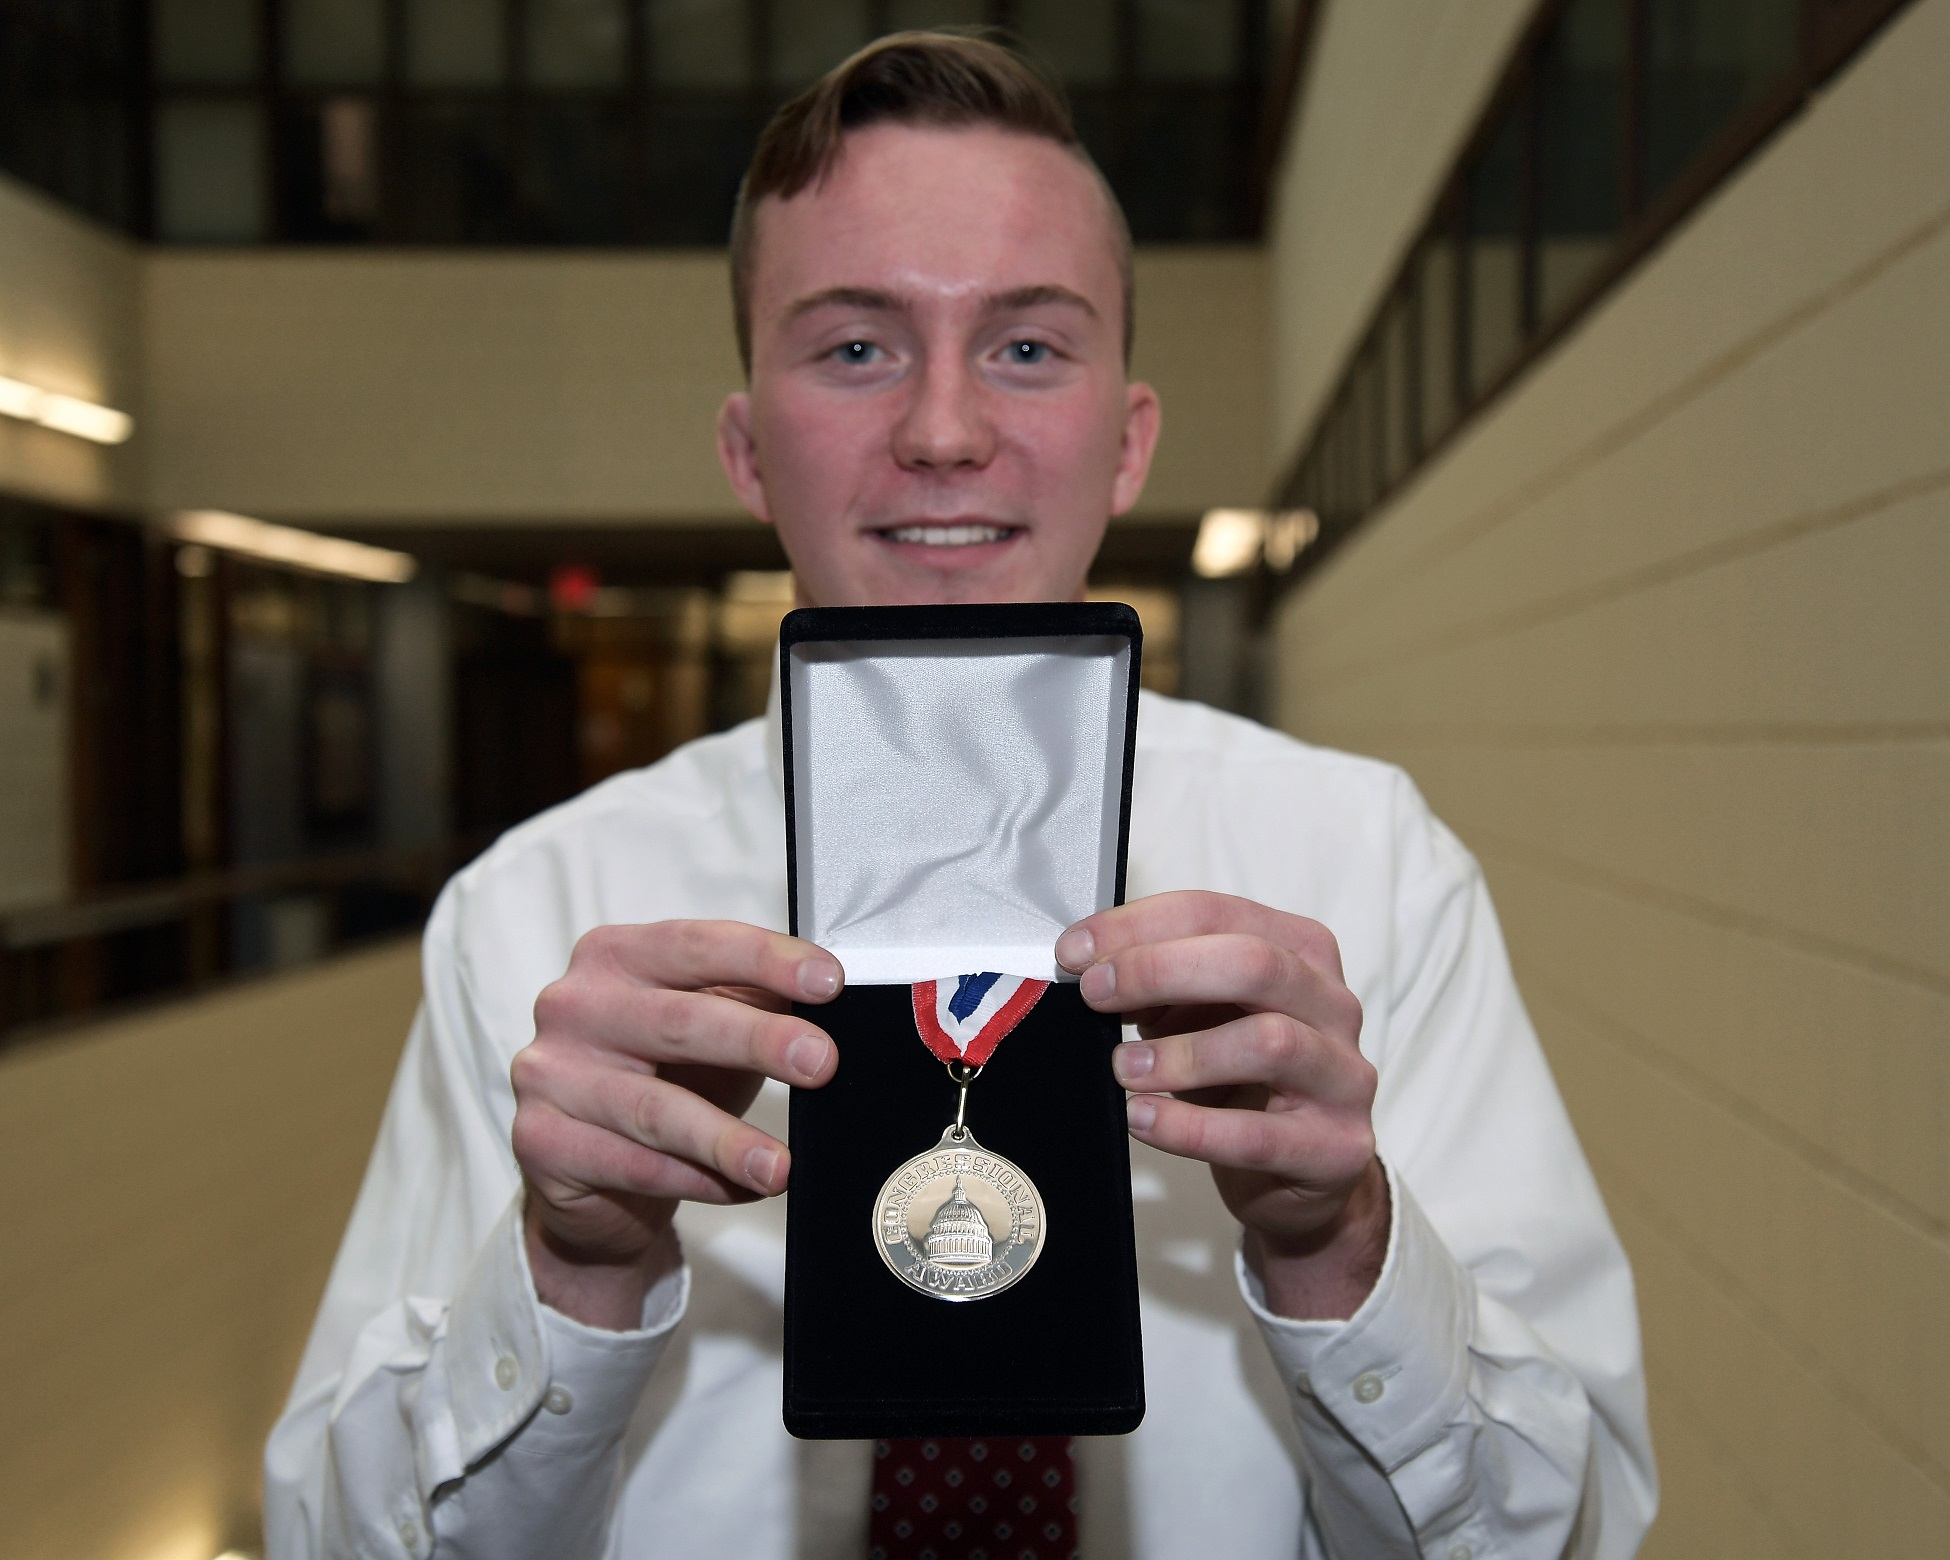 Kent State student Austin Croft displays the Congressional Award Silver Medal following a ceremony in Henderson Hall, home of the College of Nursing at Kent State.